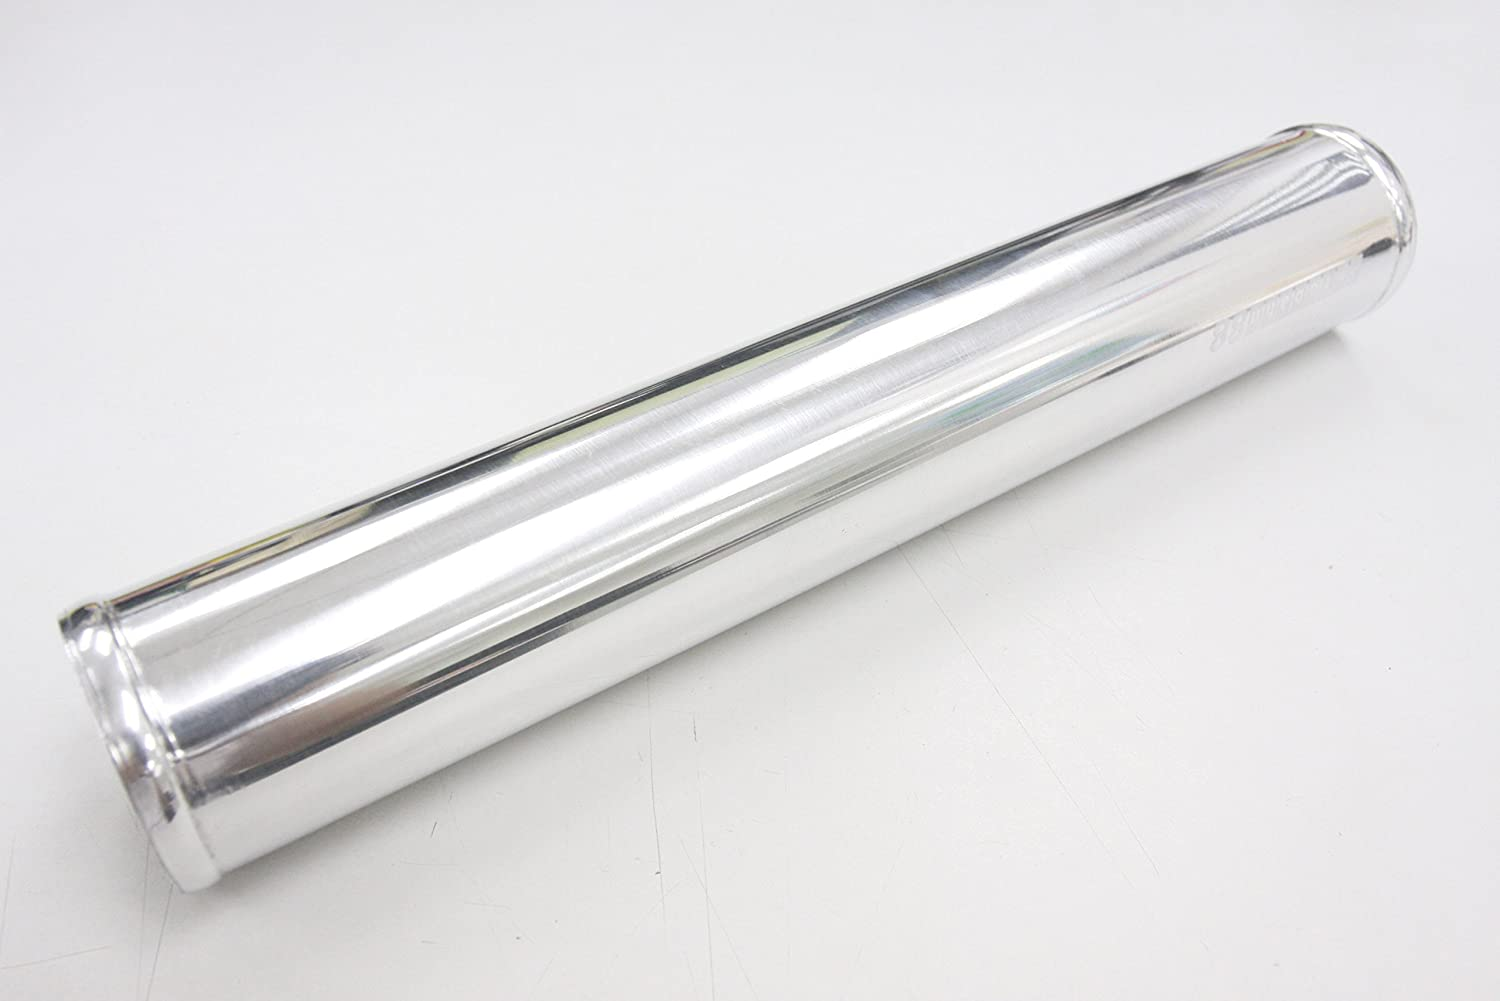 12 inch OD 4 Aluminum Alloy Pipe Tube 45 Degree Chrome Polish For Intercooler Pipe//Intake Pipe//Universal 102mm L 300mm